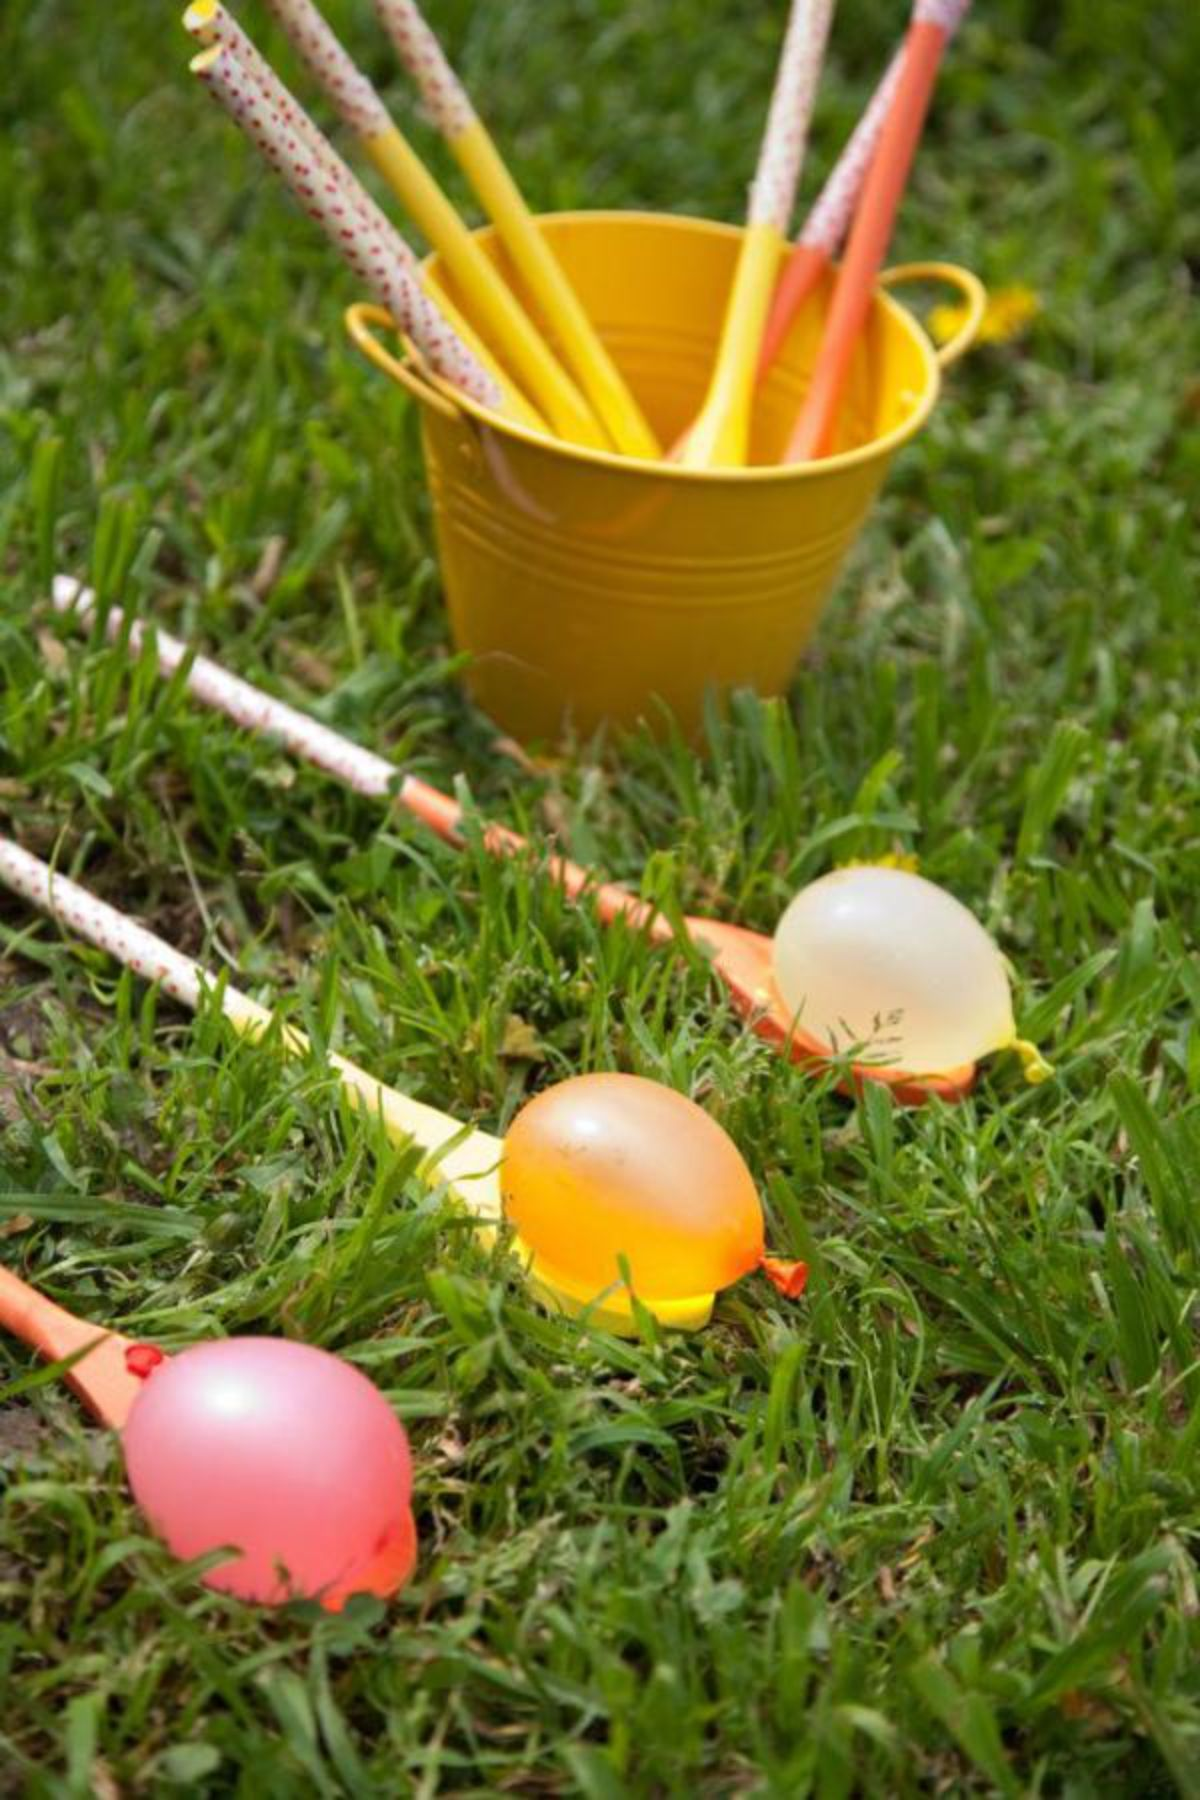 a yellow bucket with wooden spoons sticking out of it sits on grass, with 3 wooden spoons in front of it holding water balloons on them